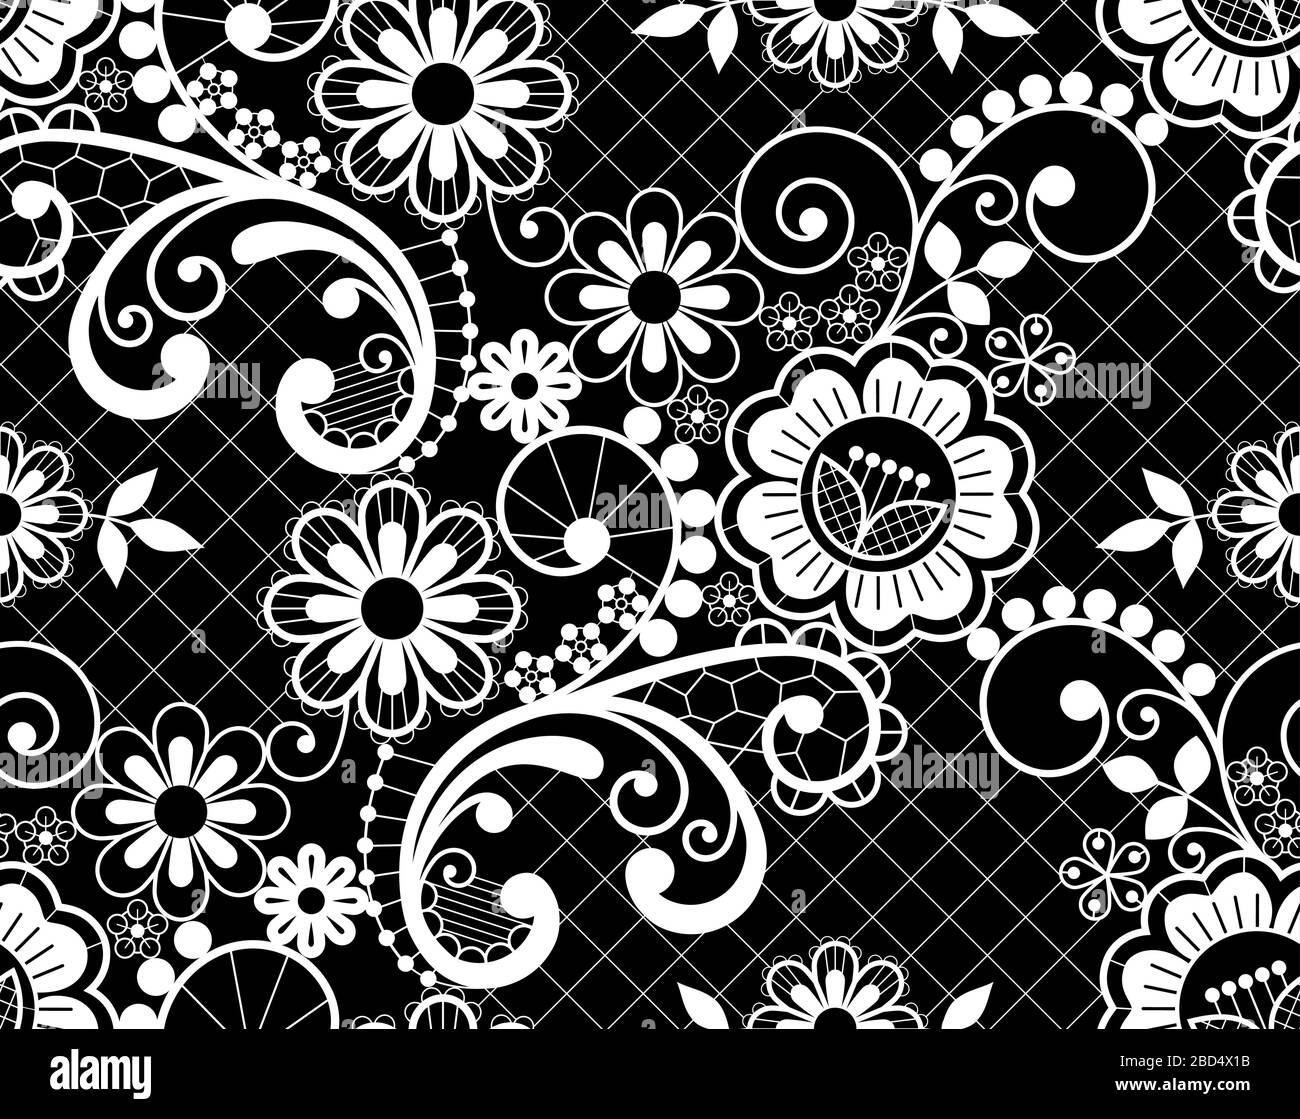 Retro seamless lace vector design - detailed vector wedding lace pattern  with flowers and swirls, symmetric ornament Stock Vector Image & Art - Alamy   1119x1300